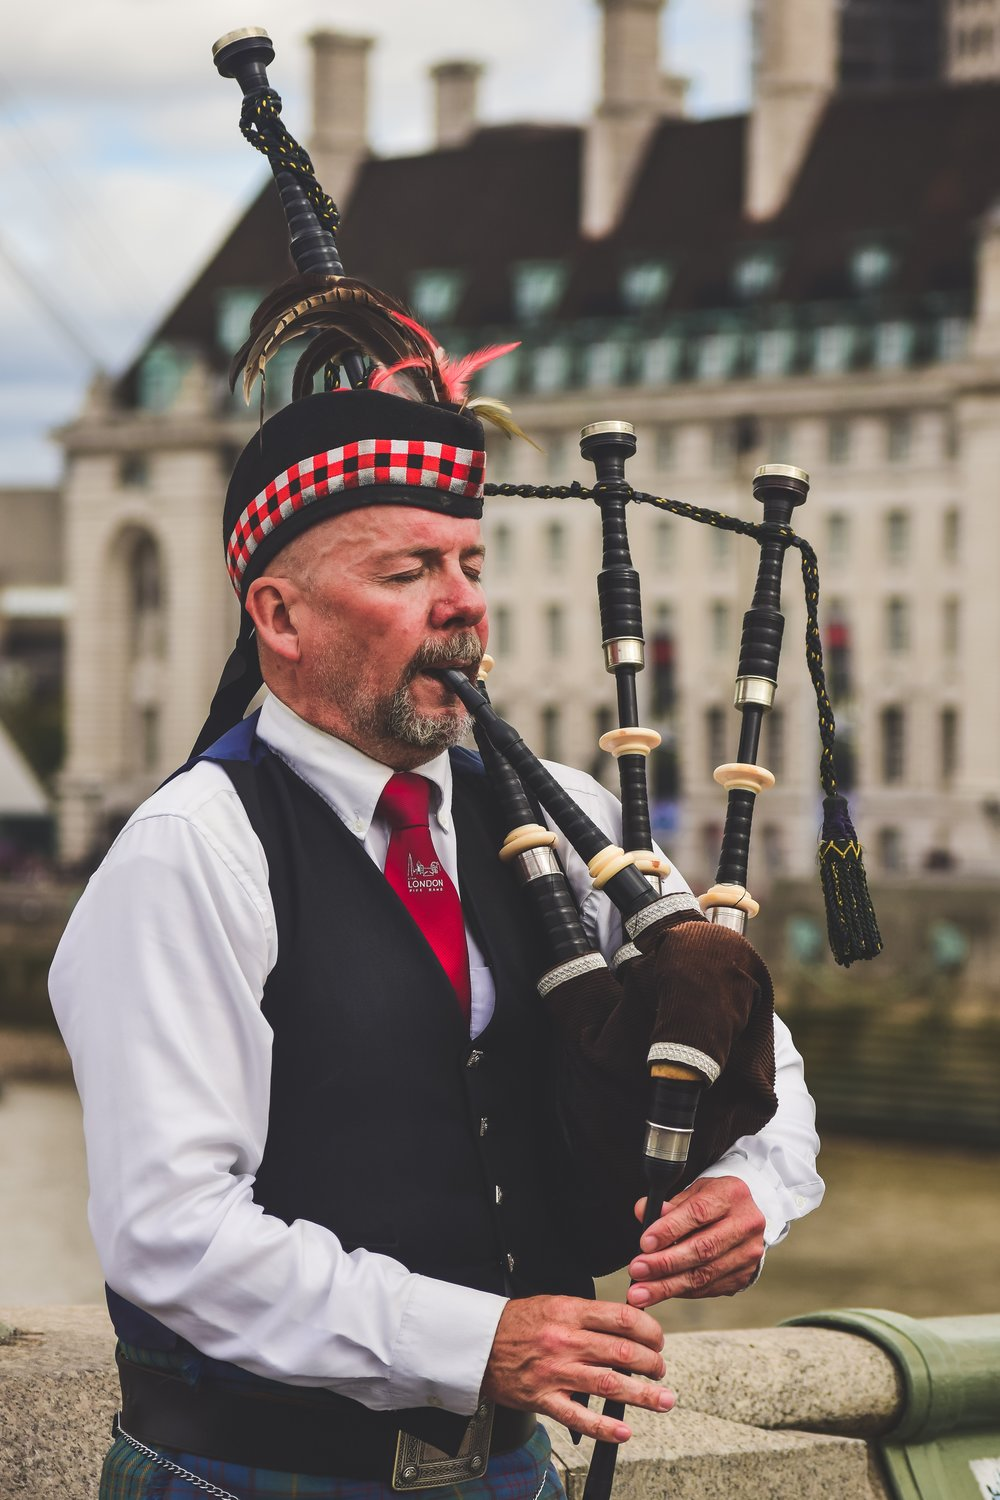 A bagpipe player. Photo by  Noralí Emilio  on  Unsplash